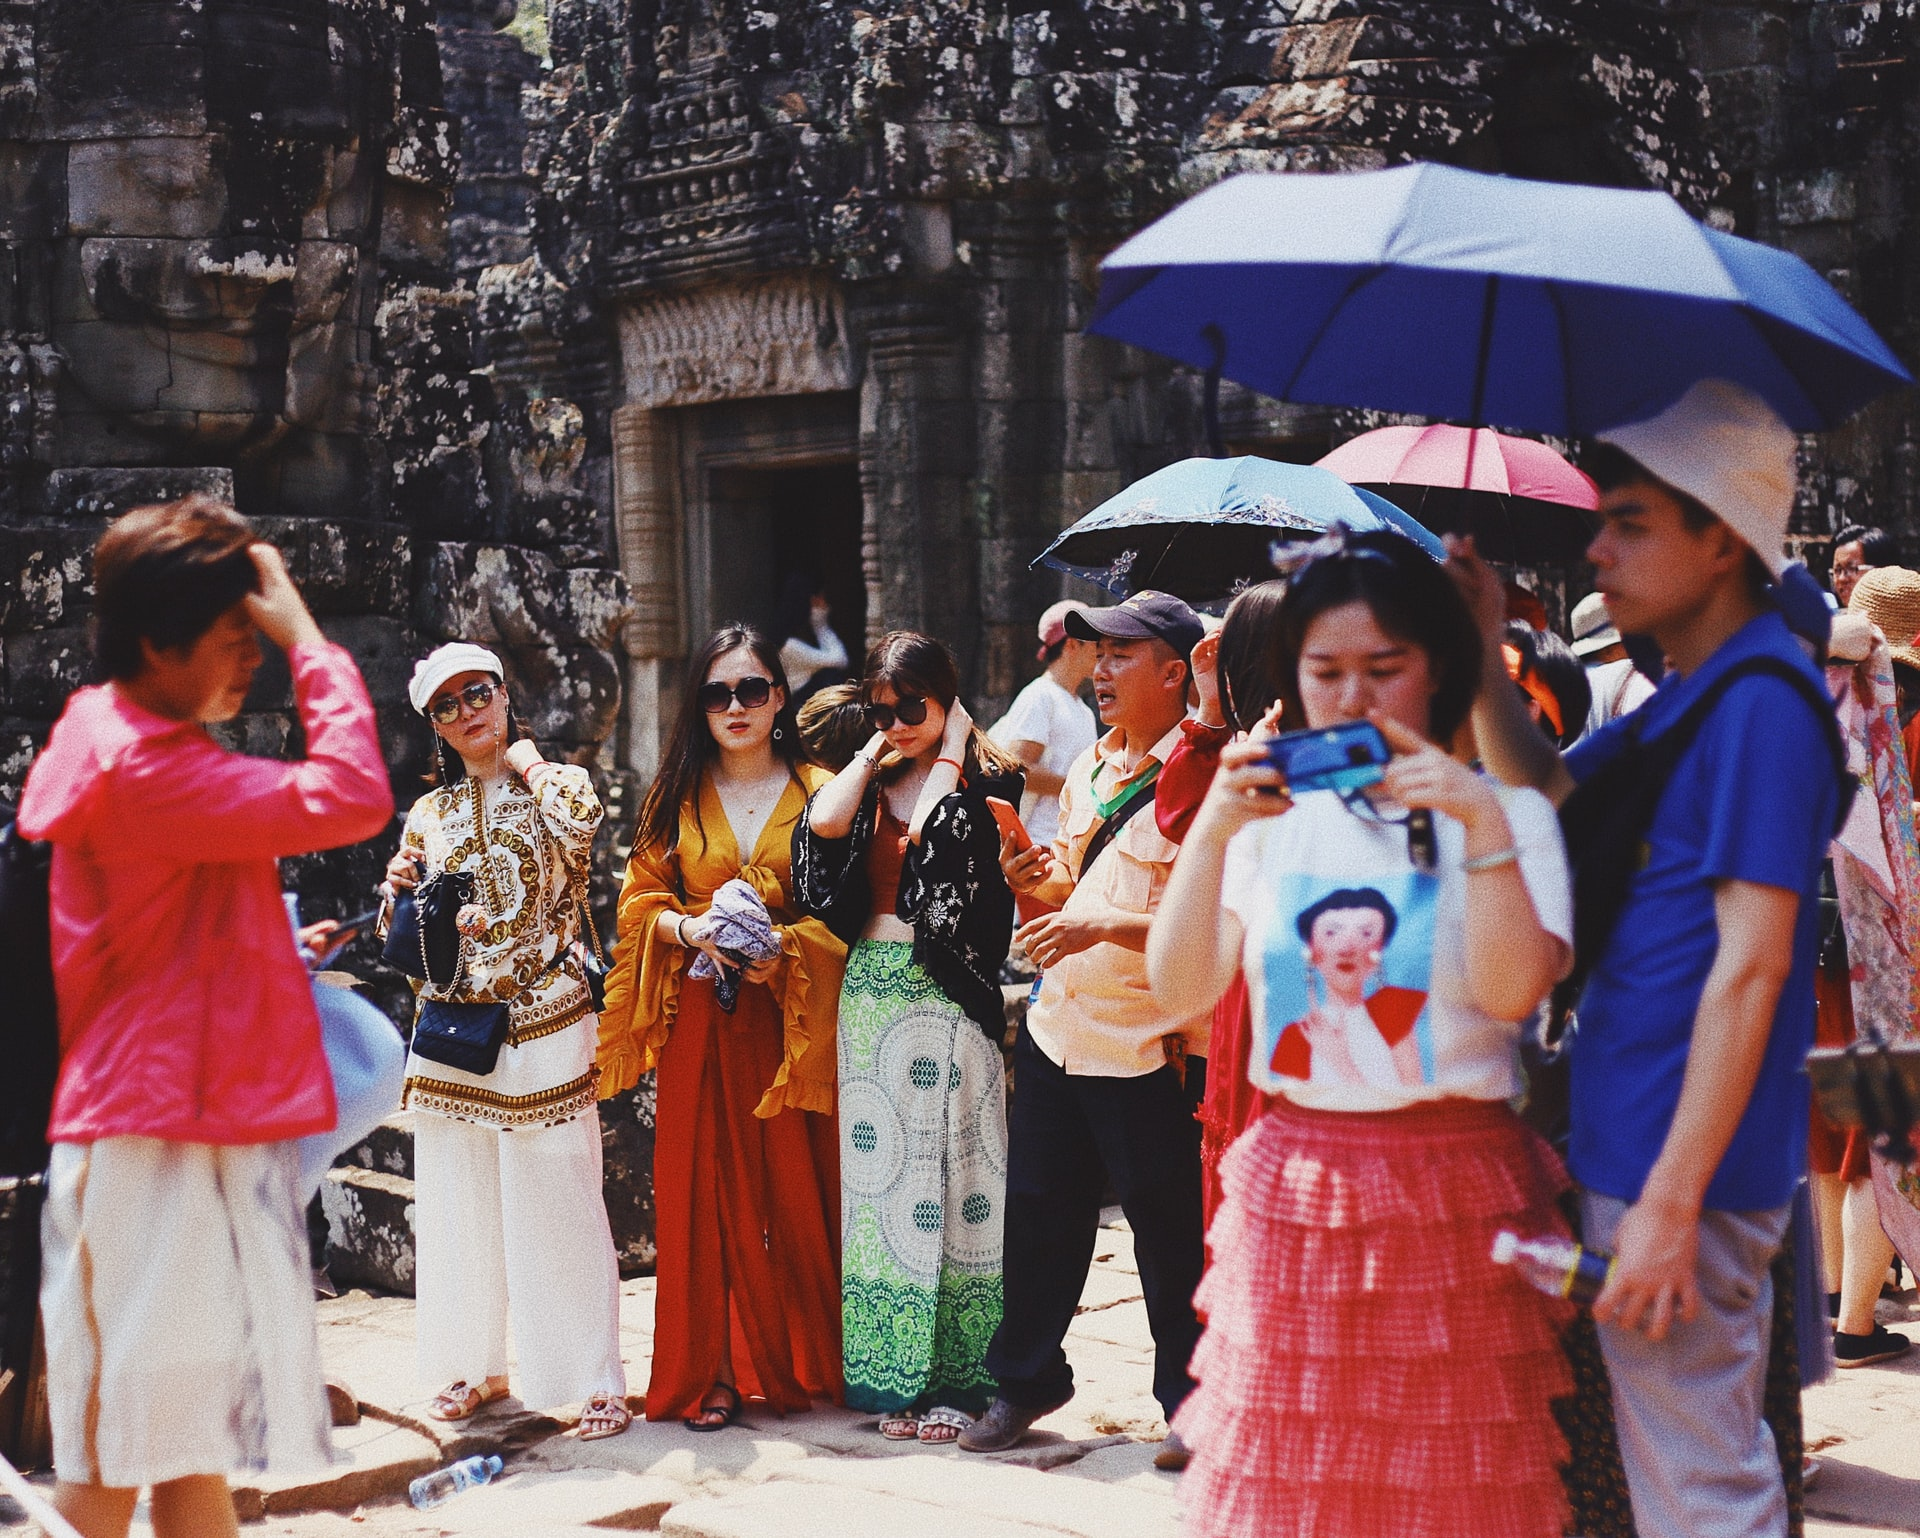 Group of tourists standing outside a temple in Cambodia. Some are adjusting their clothes, some are taking photos, while some are standing under the shade of umbrellas.